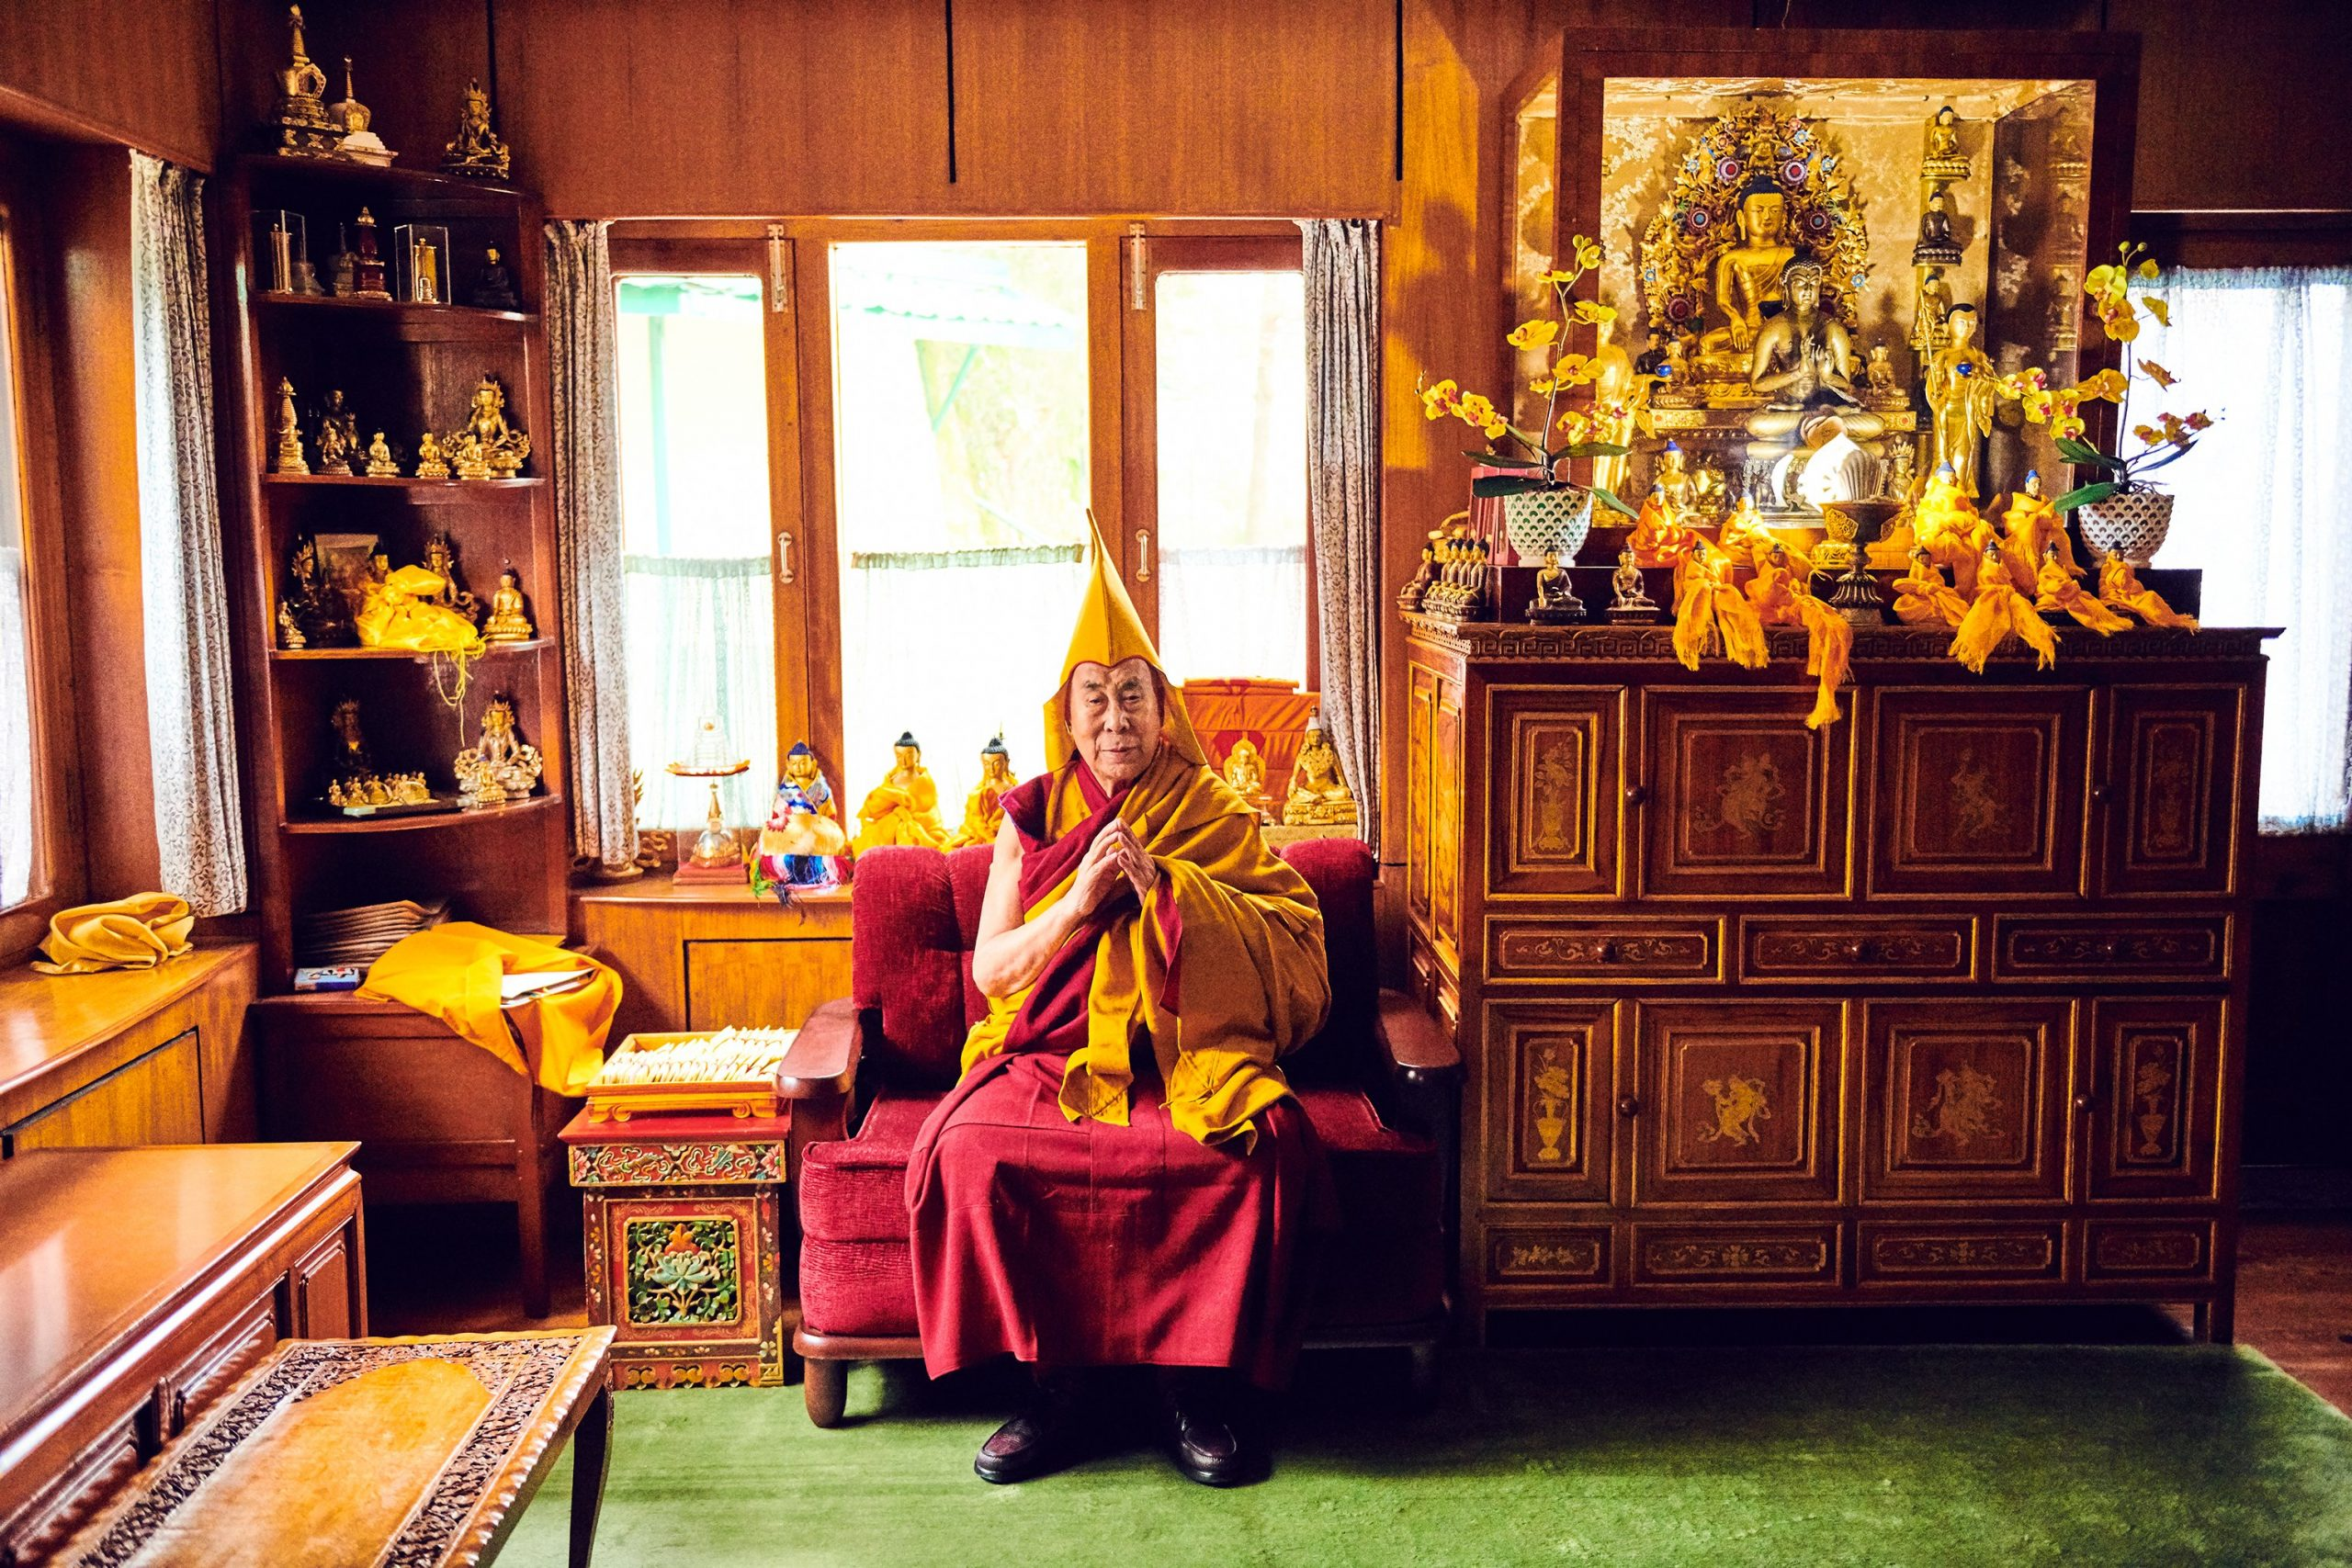 The Dalai Lama Has Been the Face of Buddhism for 60 Years. China Wants to Change That